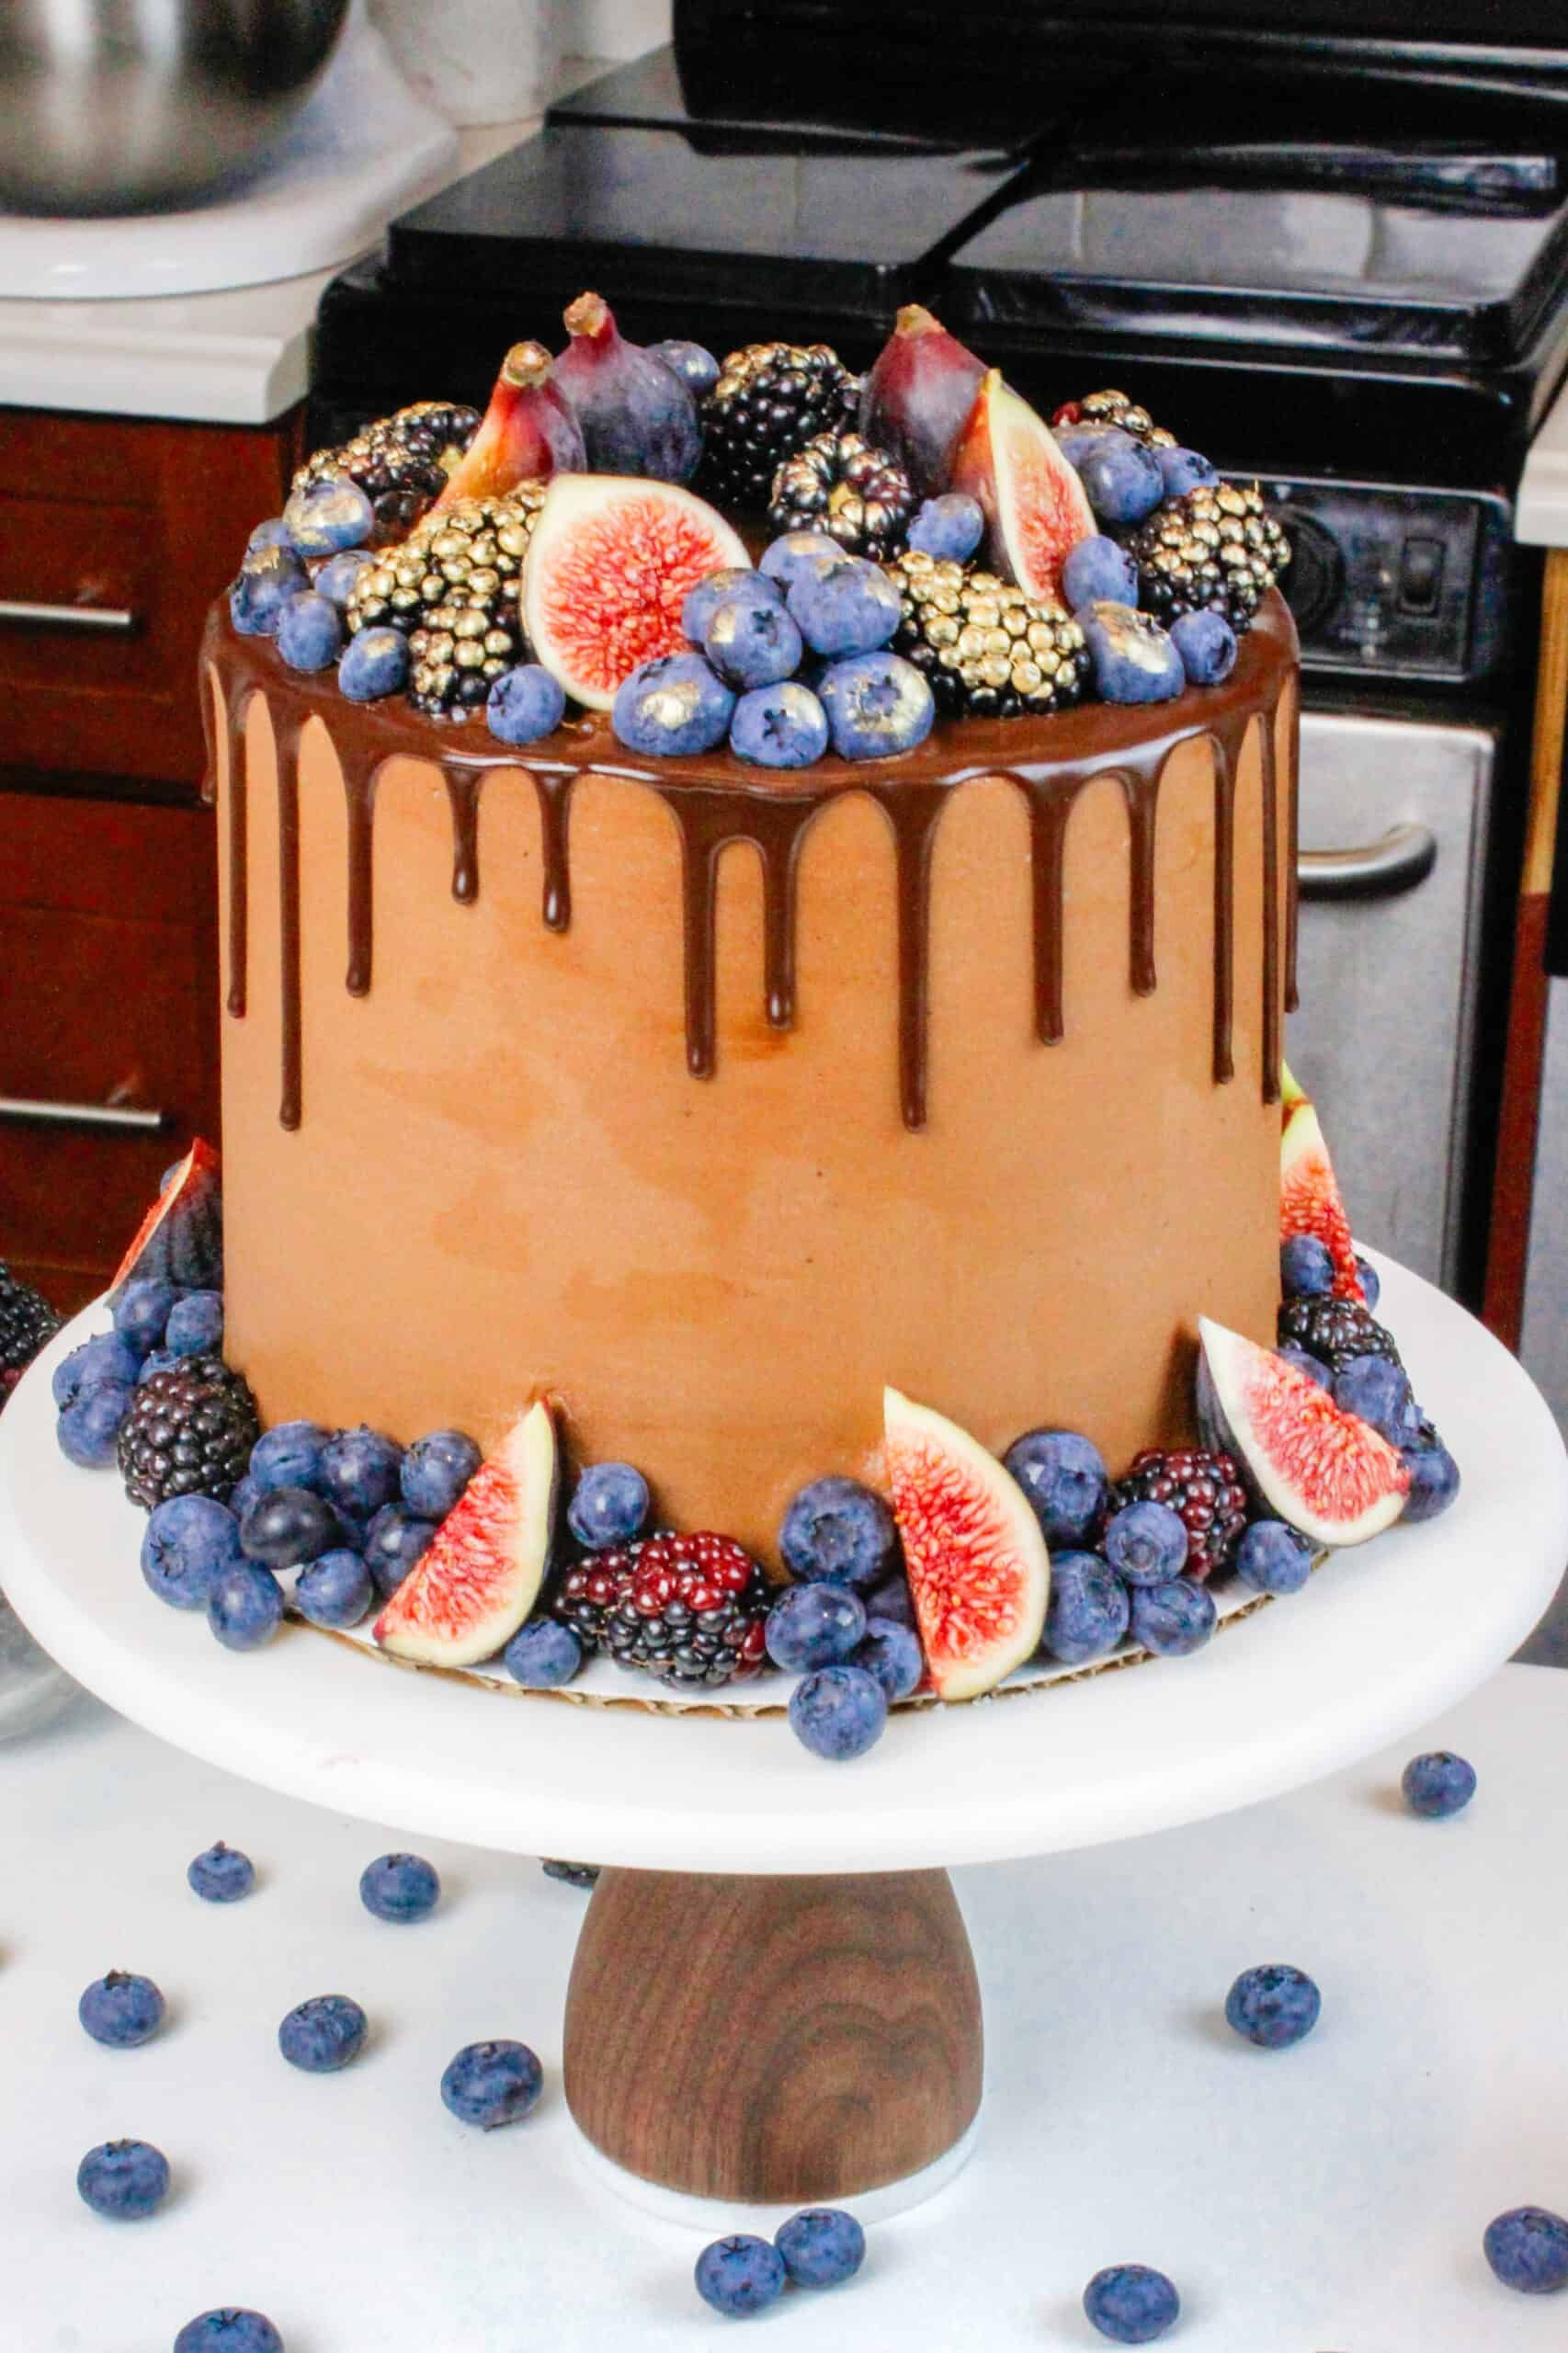 Chocolate Blackberry Cake The Perfect 6 Inch Cake Recipe Recipe In 2020 Chocolate Cake Recipe Tasty Chocolate Cake Small Chocolate Cake